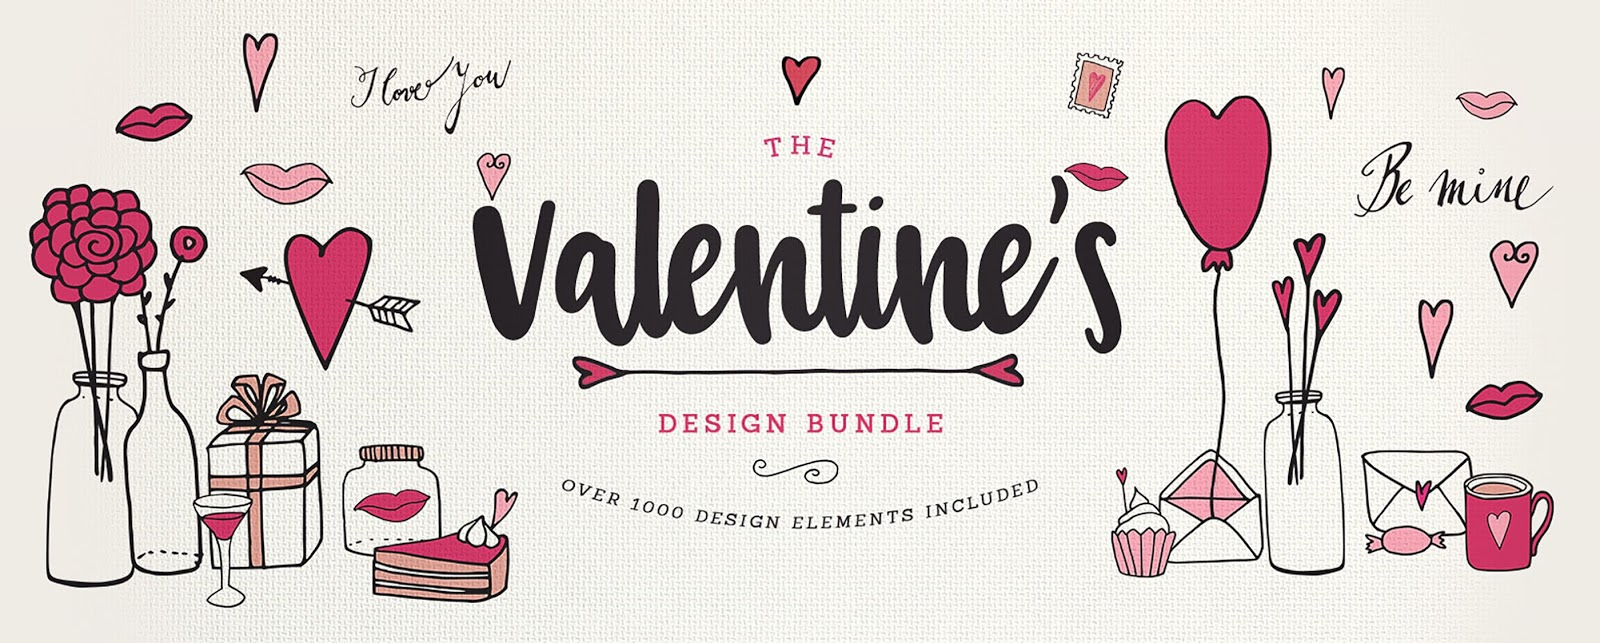 Valentines Design Bundle.Valentines day card freebie, free download.